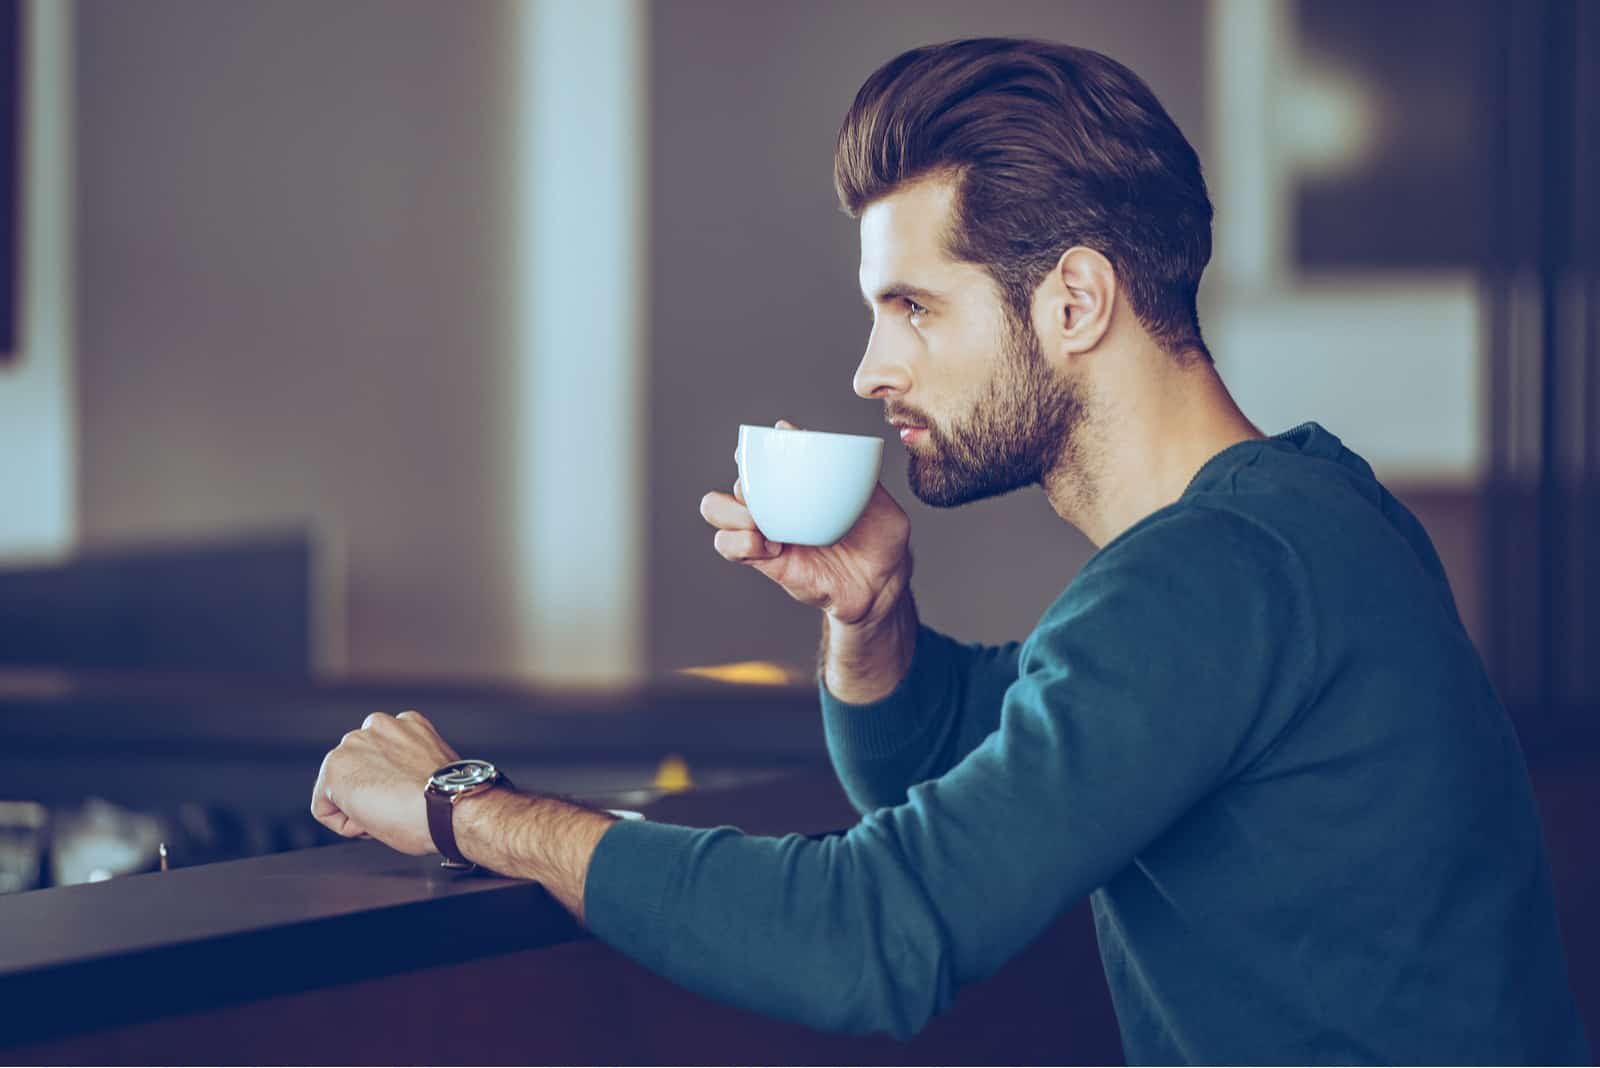 an imaginary man sits and drinks coffee